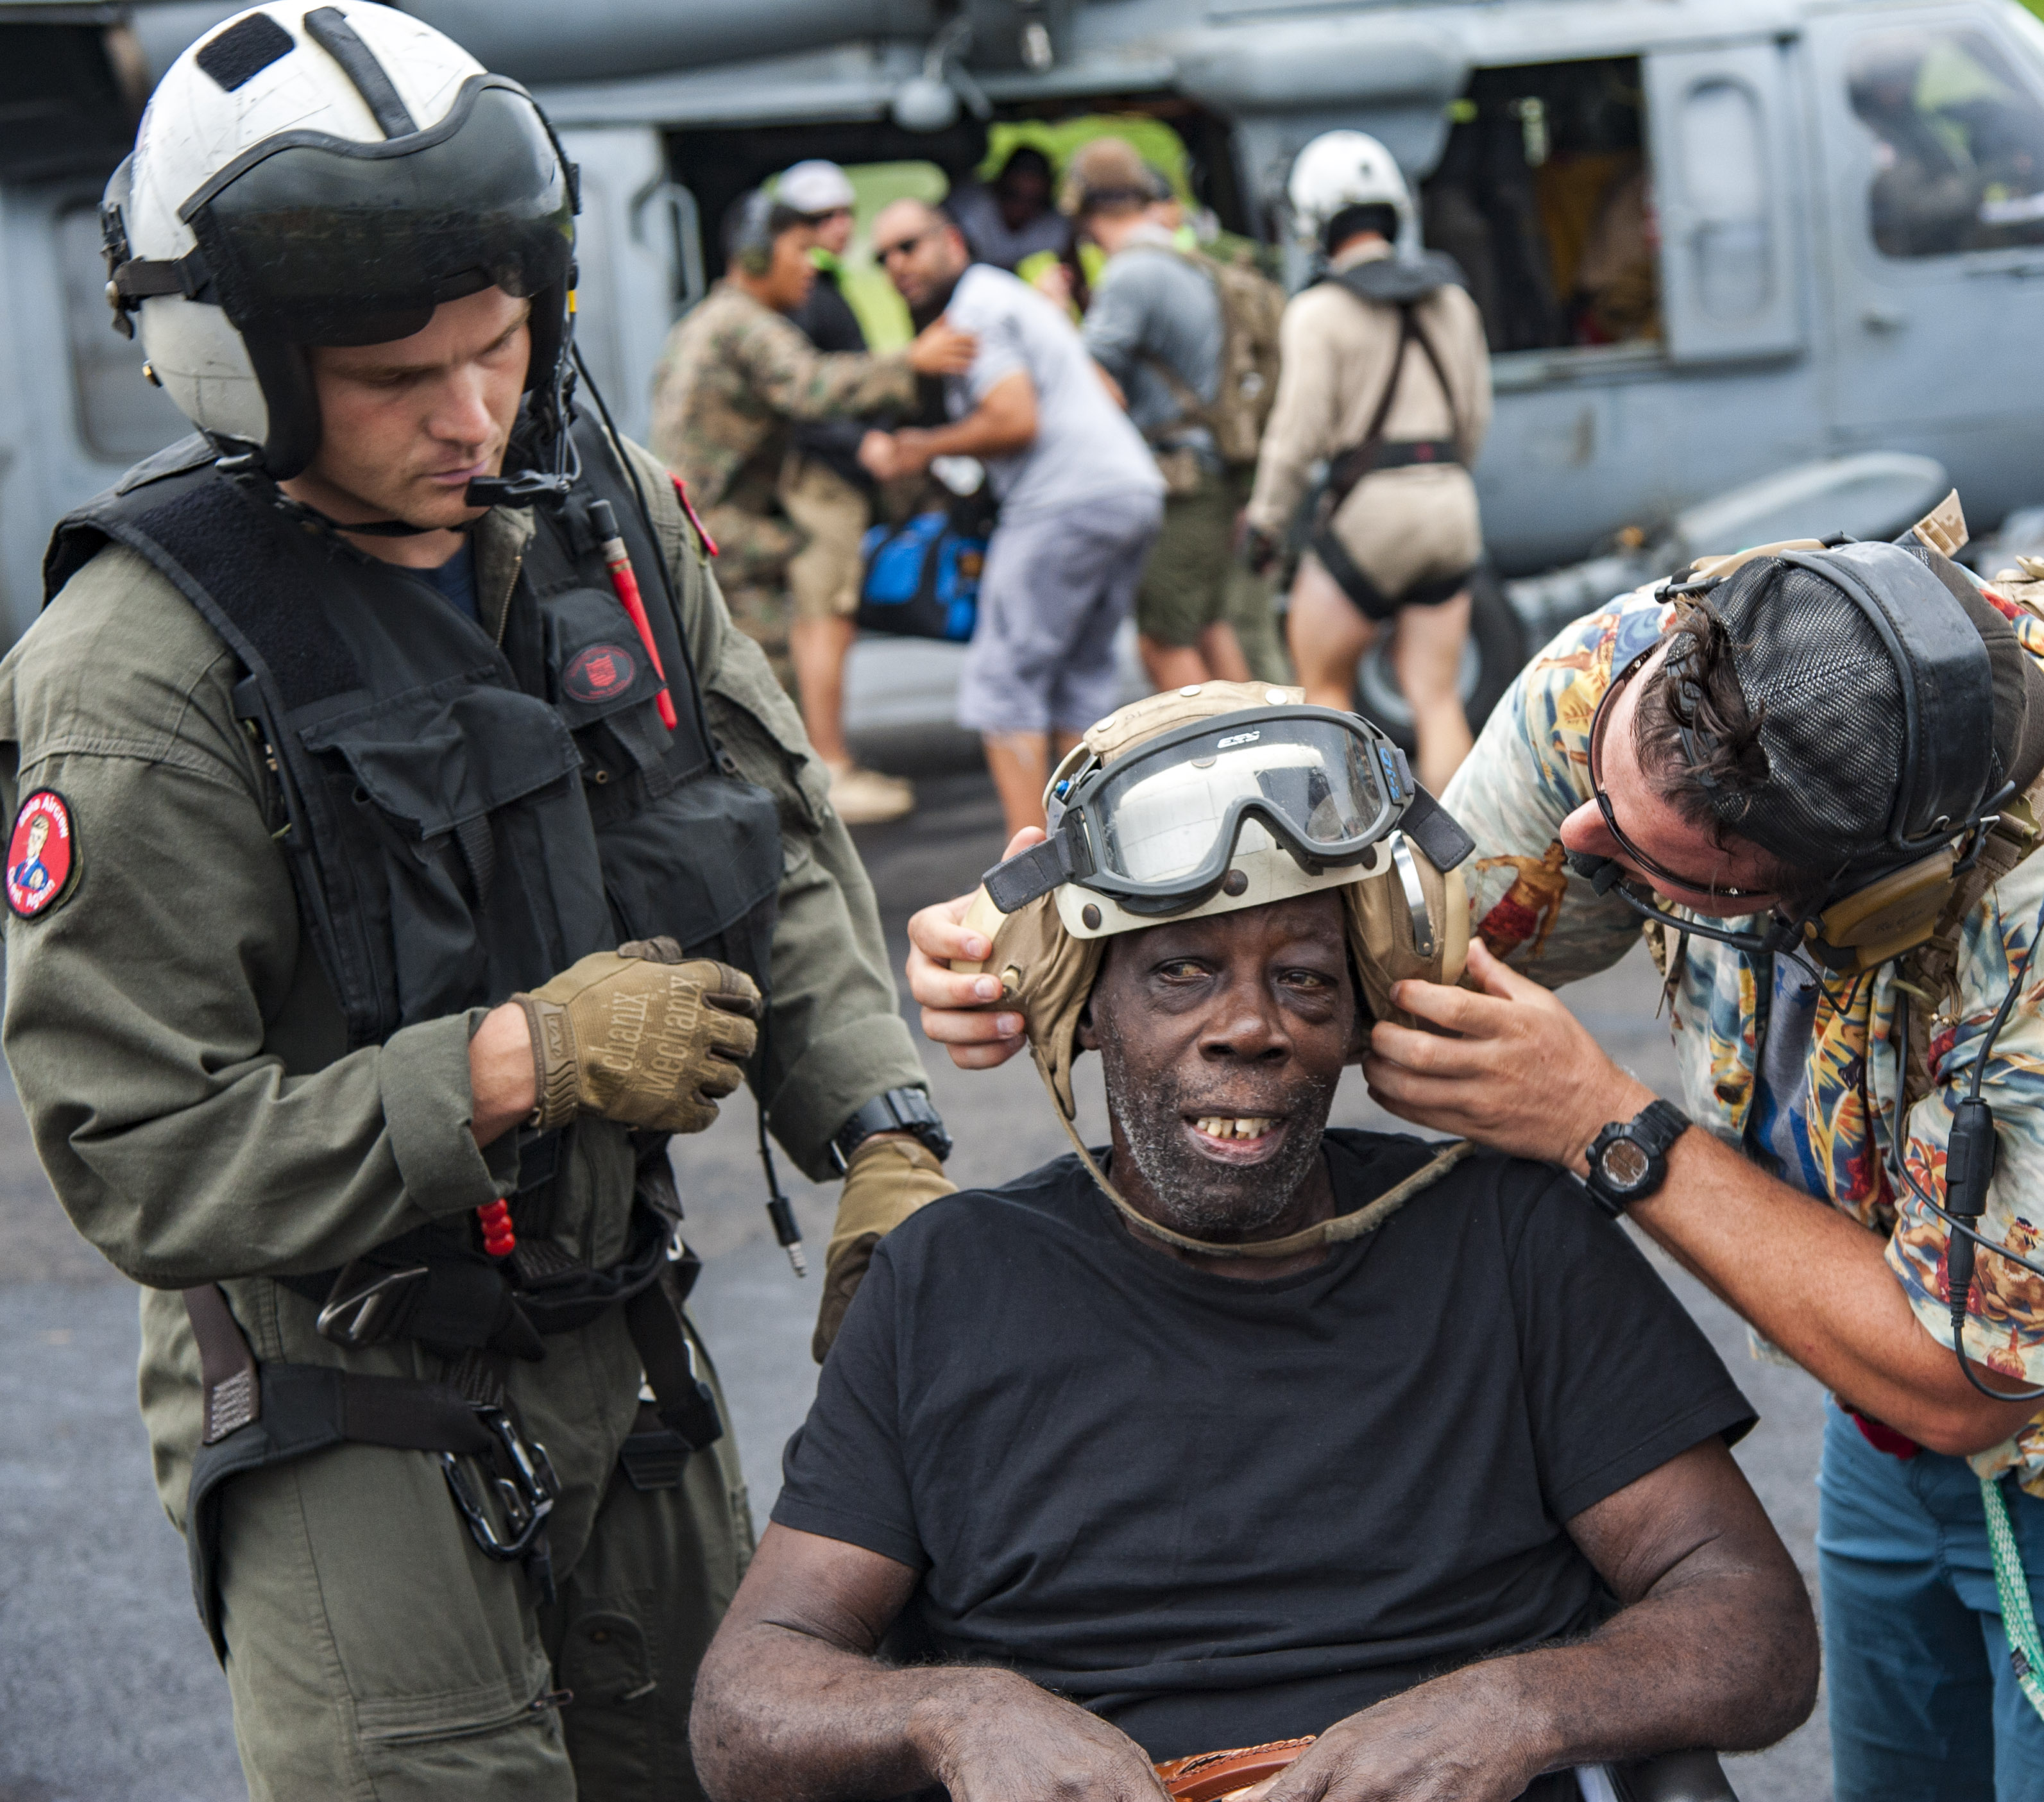 In this U.S. Navy handout, Naval Aircrewman (Helicopter) 2nd Class Nicholas Glass, assigned to Helicopter Sea Combat Squadron (HSC) 22 aboard to the amphibious assault ship USS Wasp (LHD 1), prepares a resident for evacuation following the landfall of Hurricane Maria on September 28, 2017. Photo by Mass Communication Specialist Seaman Taylor King/U.S. Navy via Getty Images